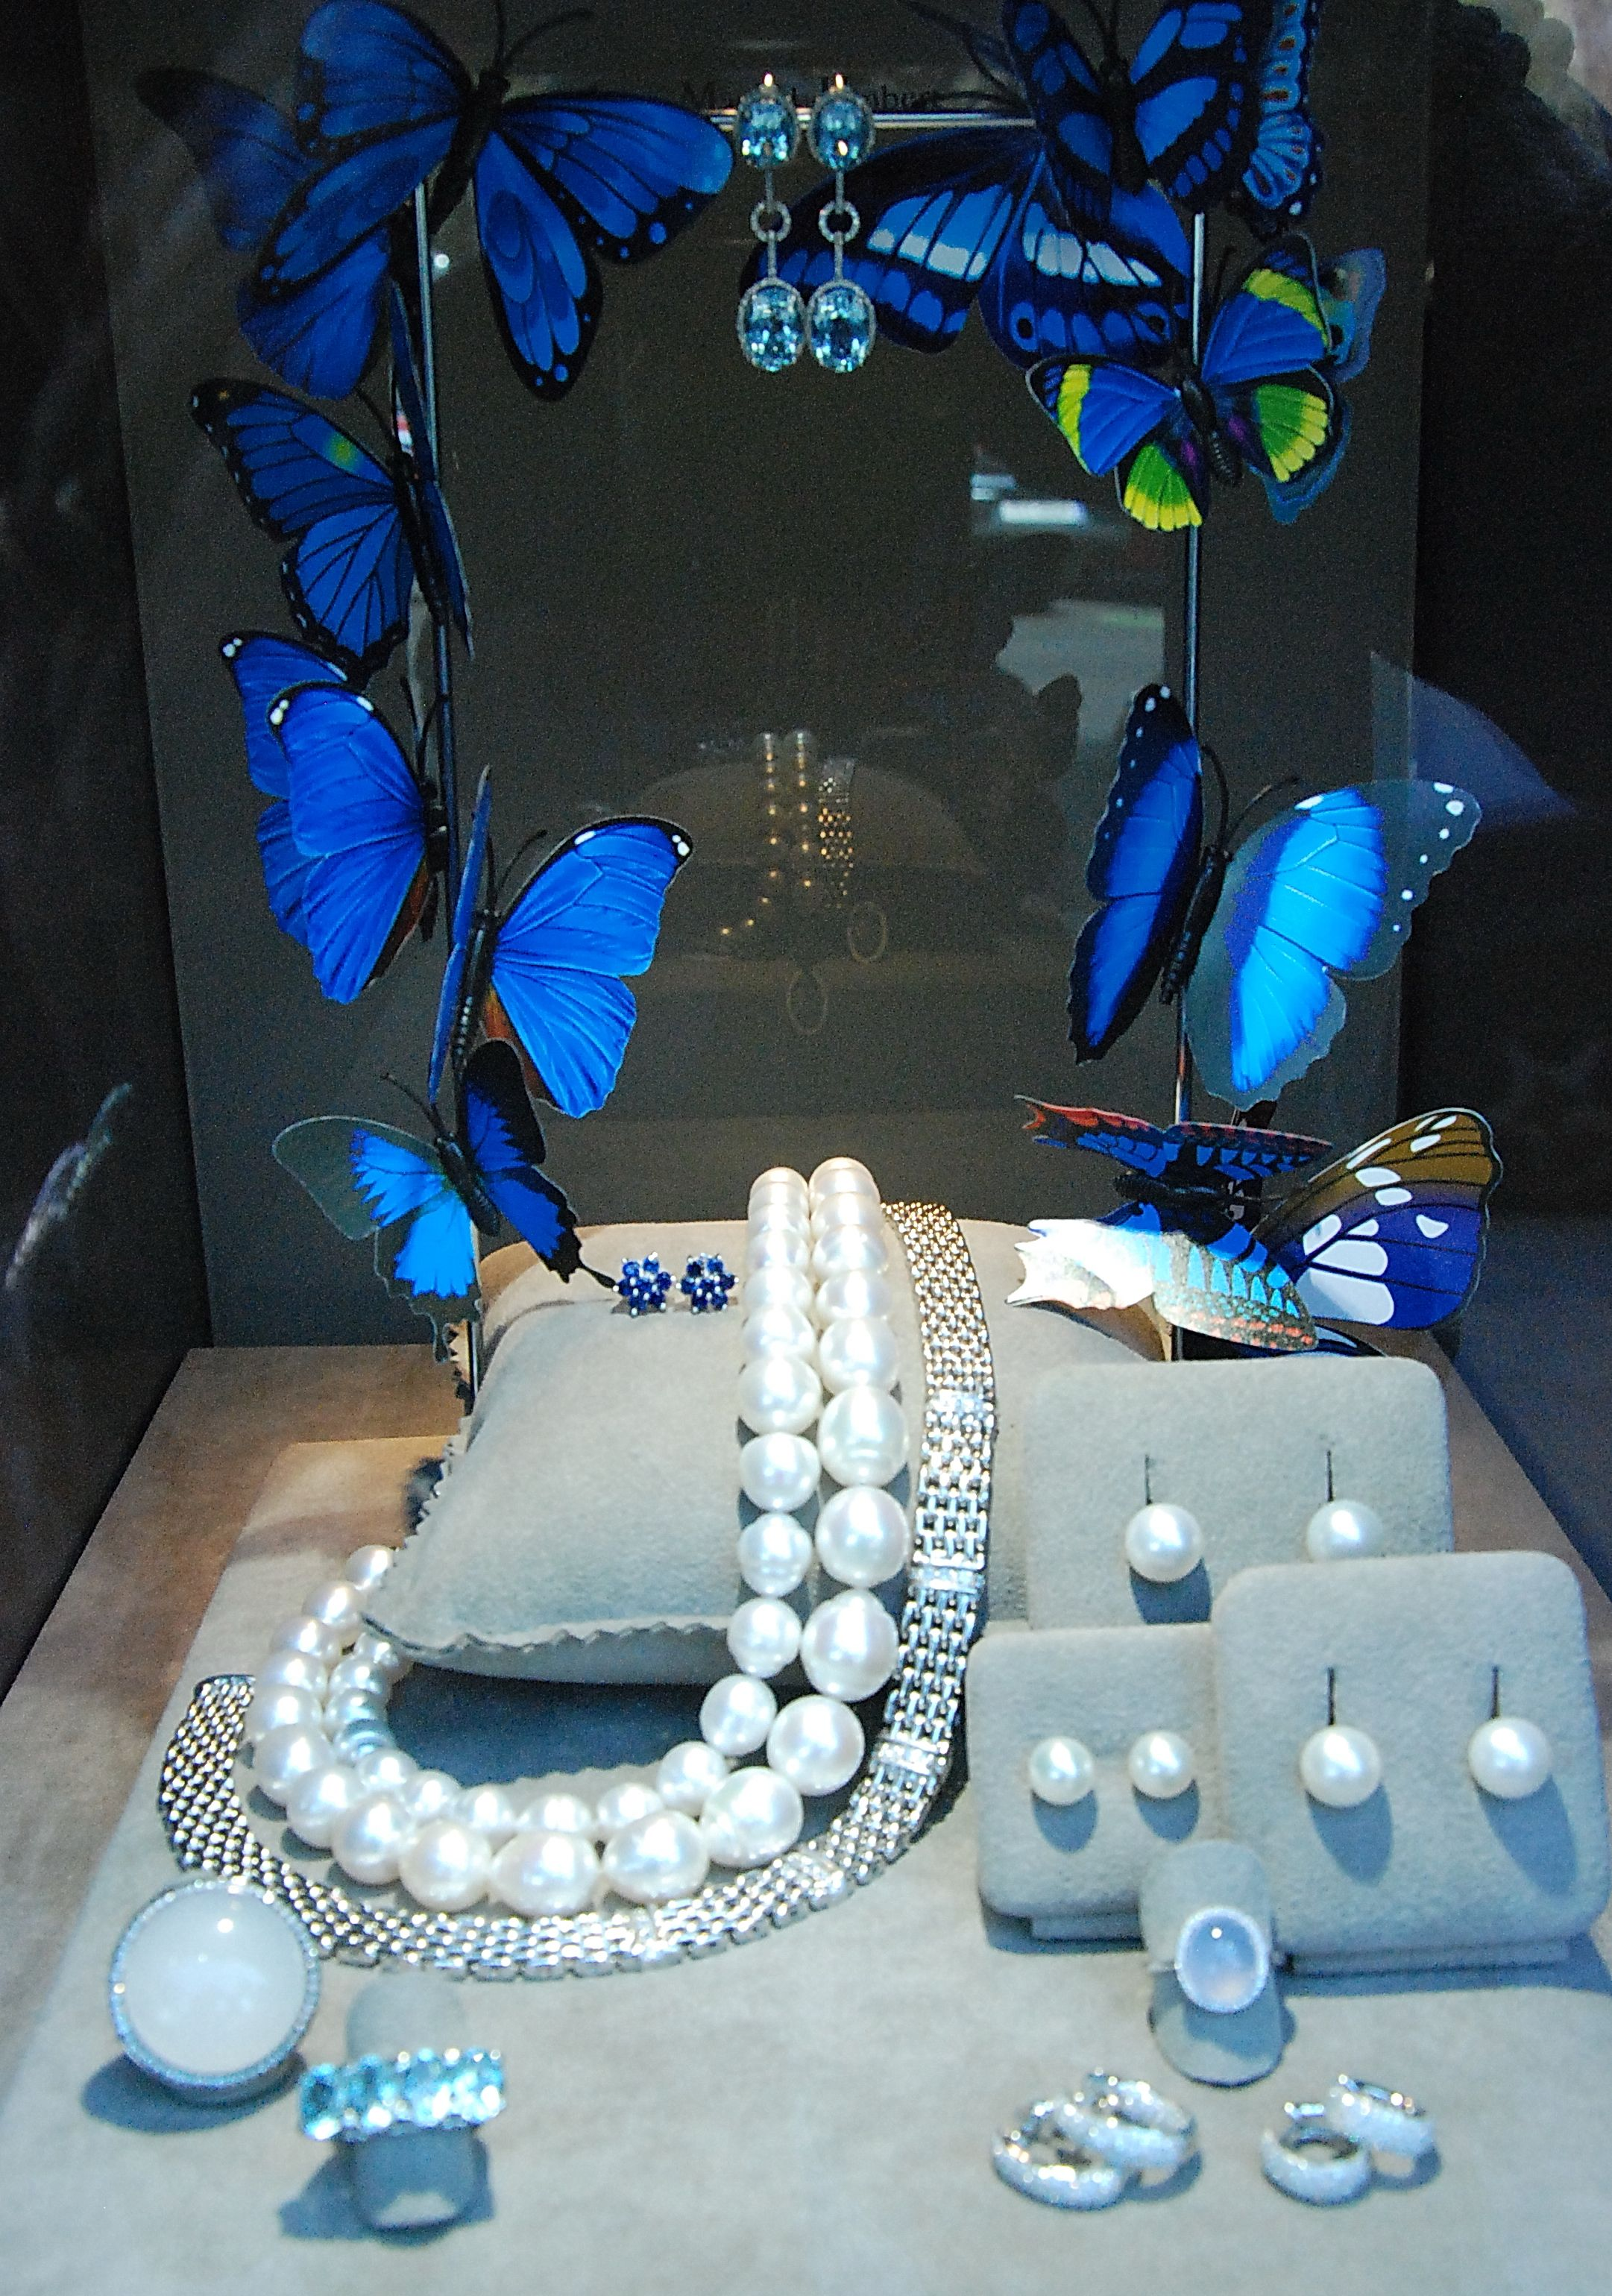 Window display ideas for jewelry  nuevos escaparates  window display and retail space  pinterest